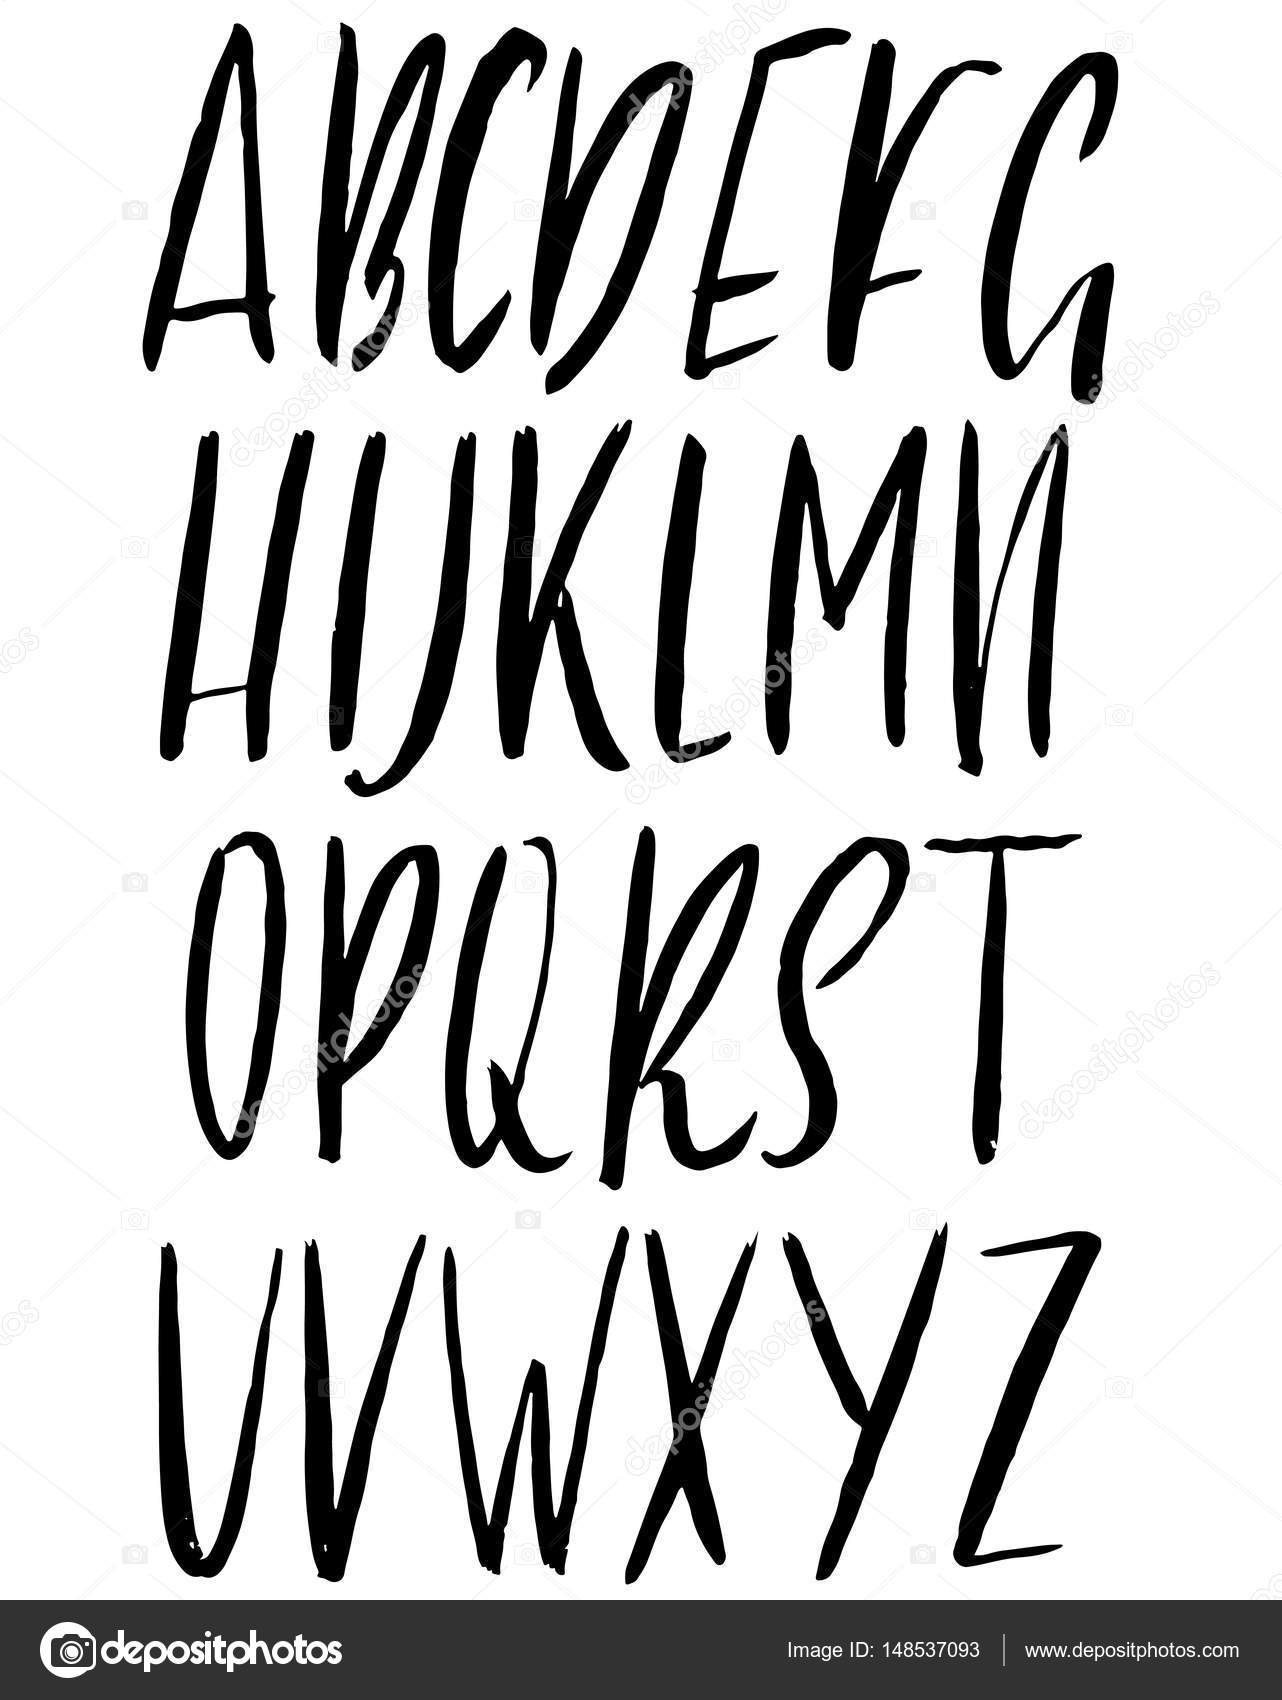 Hand drawn ink simple font modern brush lettering grunge style alphabet vector illustration